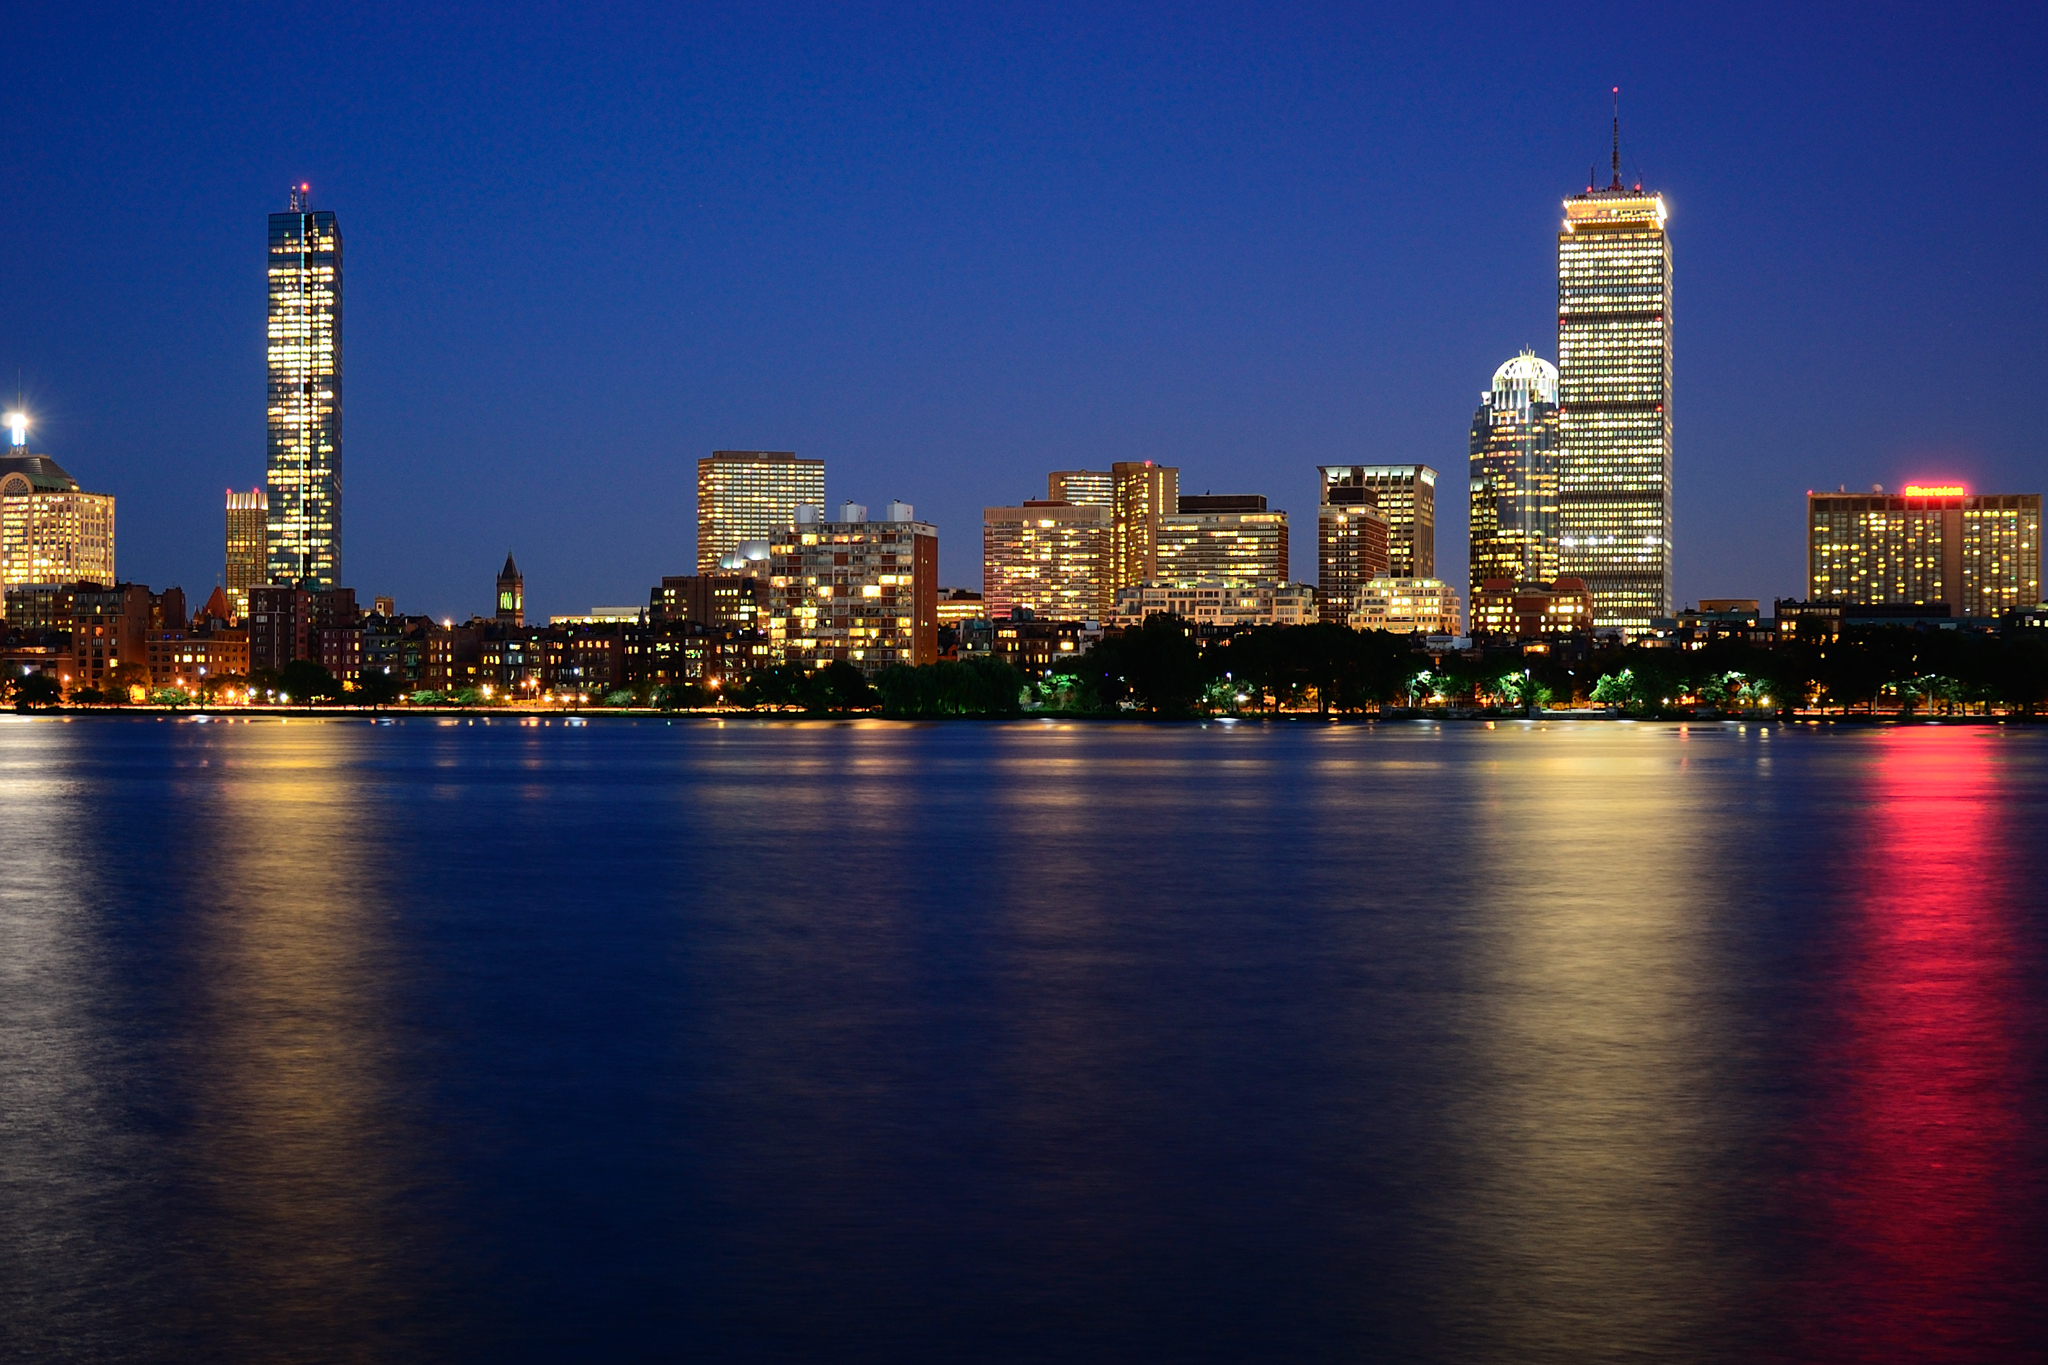 Good Wallpaper Hd An Underaged Guide To Boston After Hours The Quad